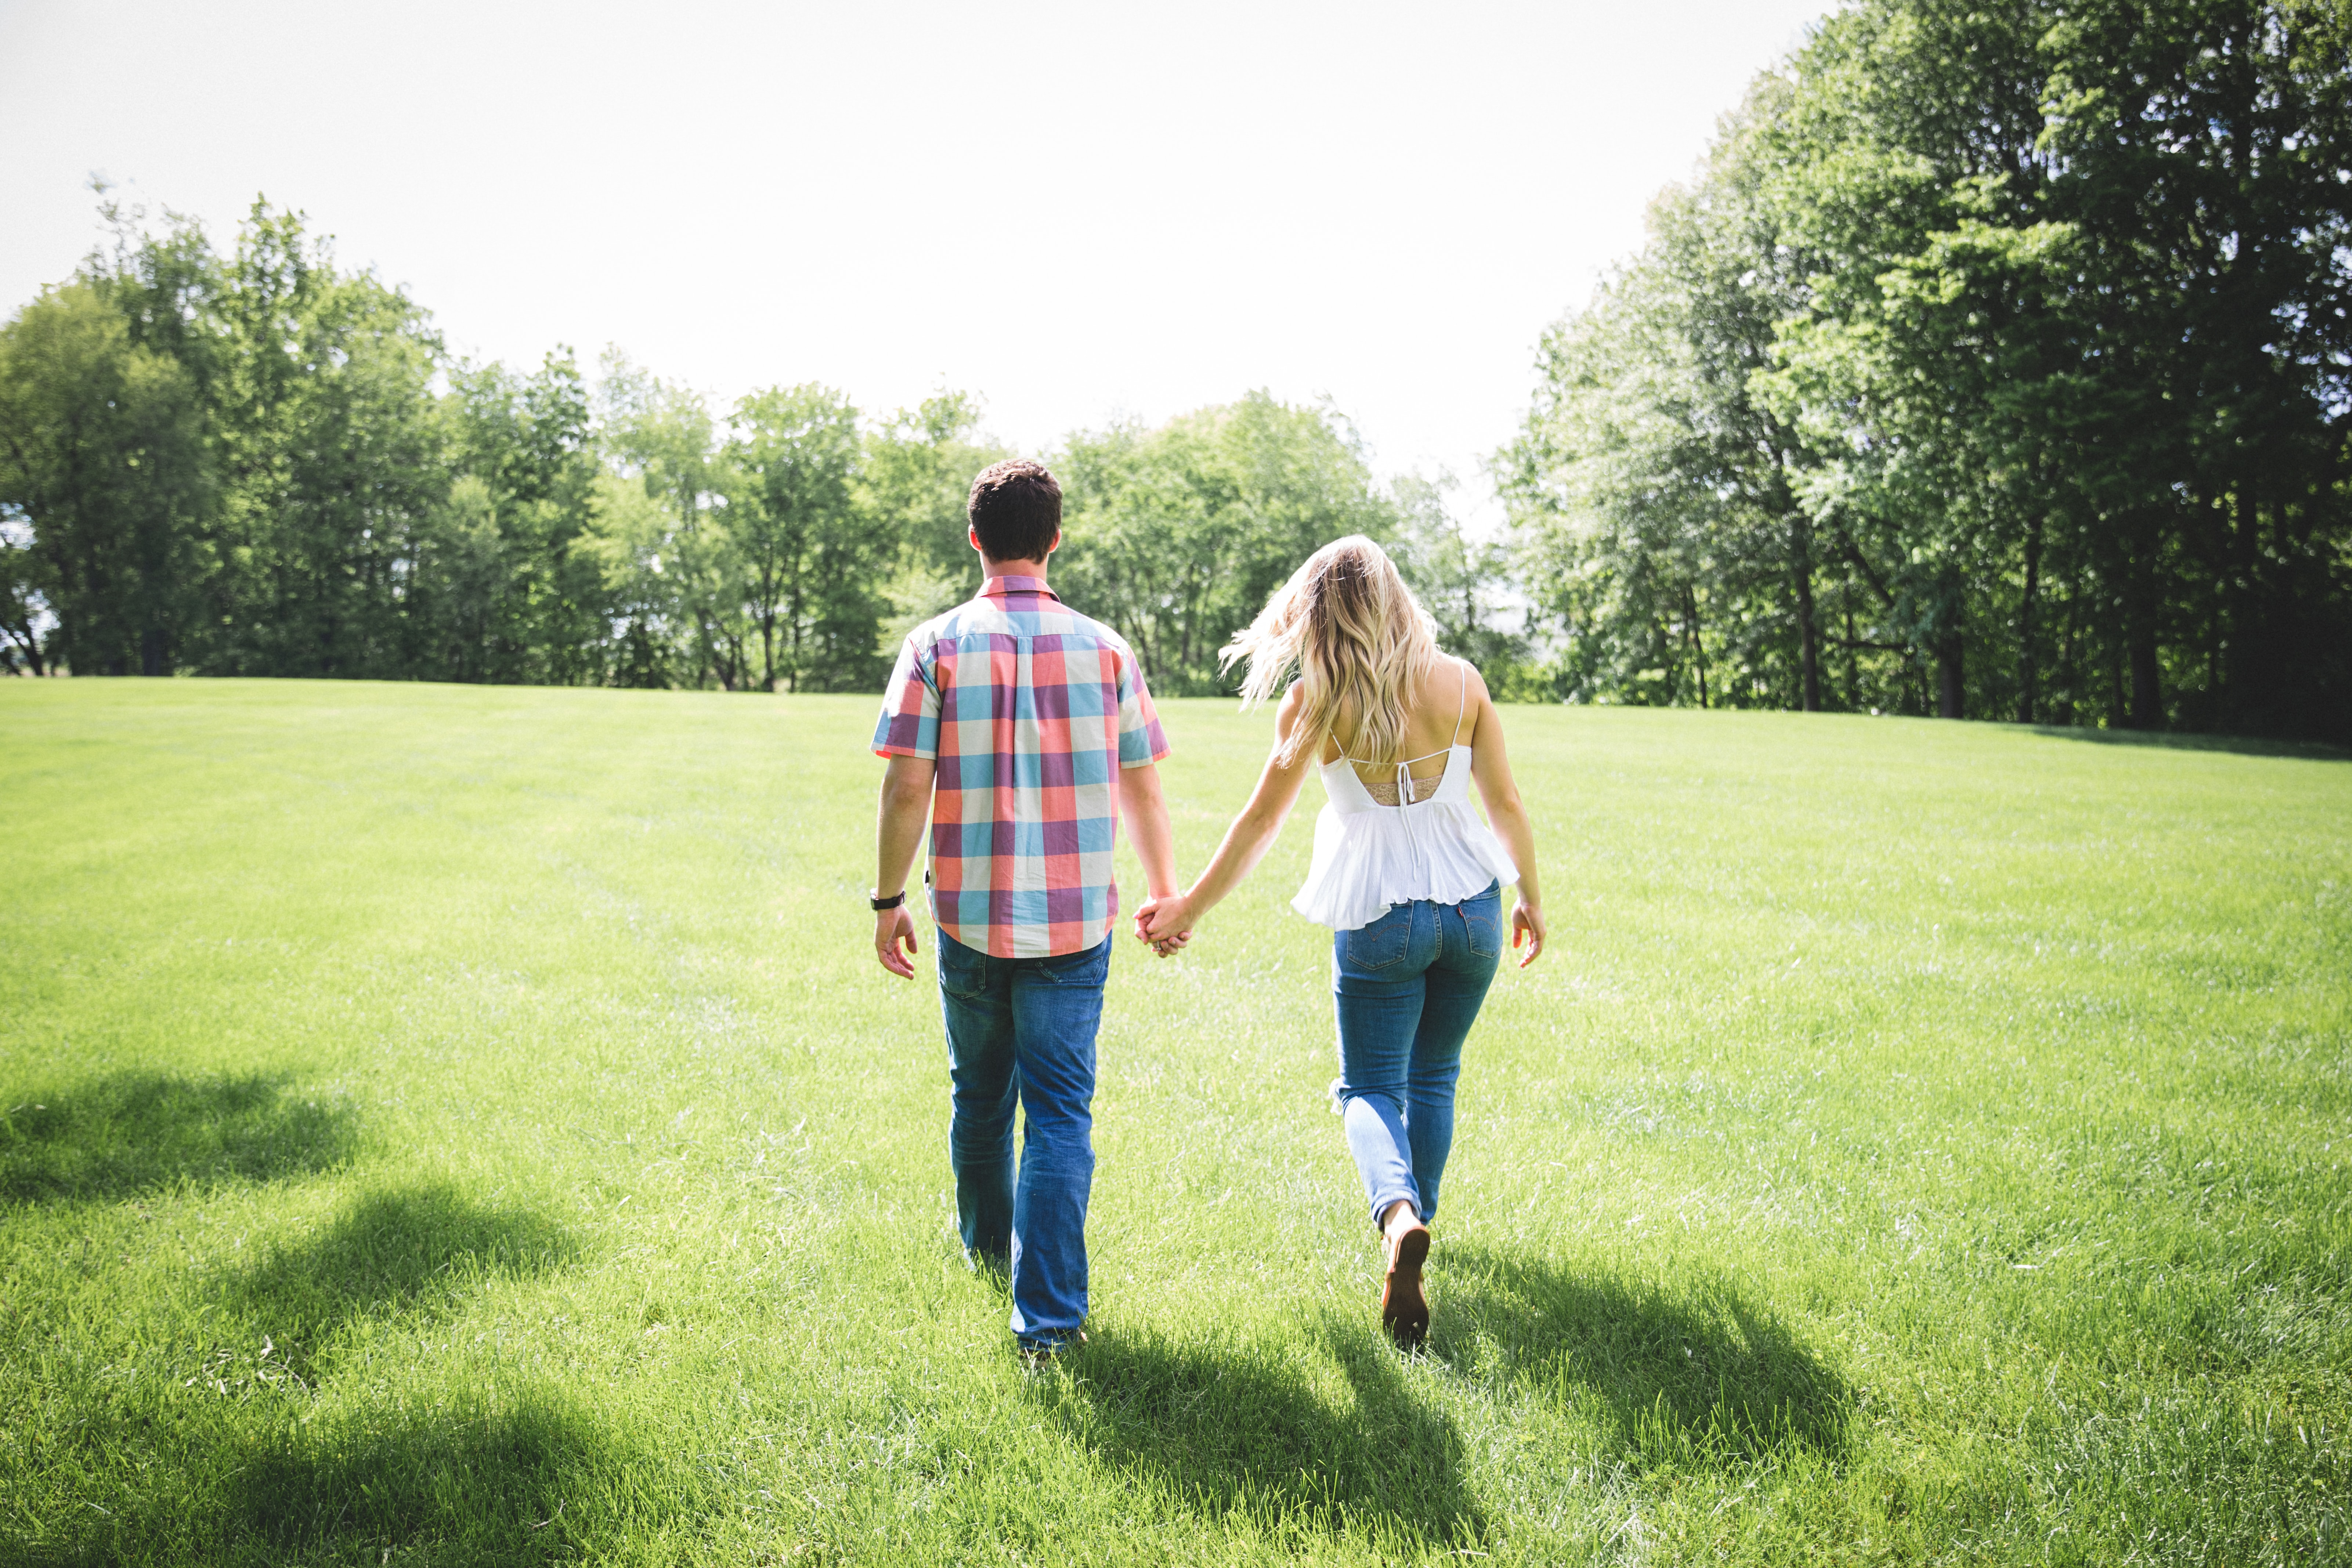 The back view of a couple holding hands walking in a park.